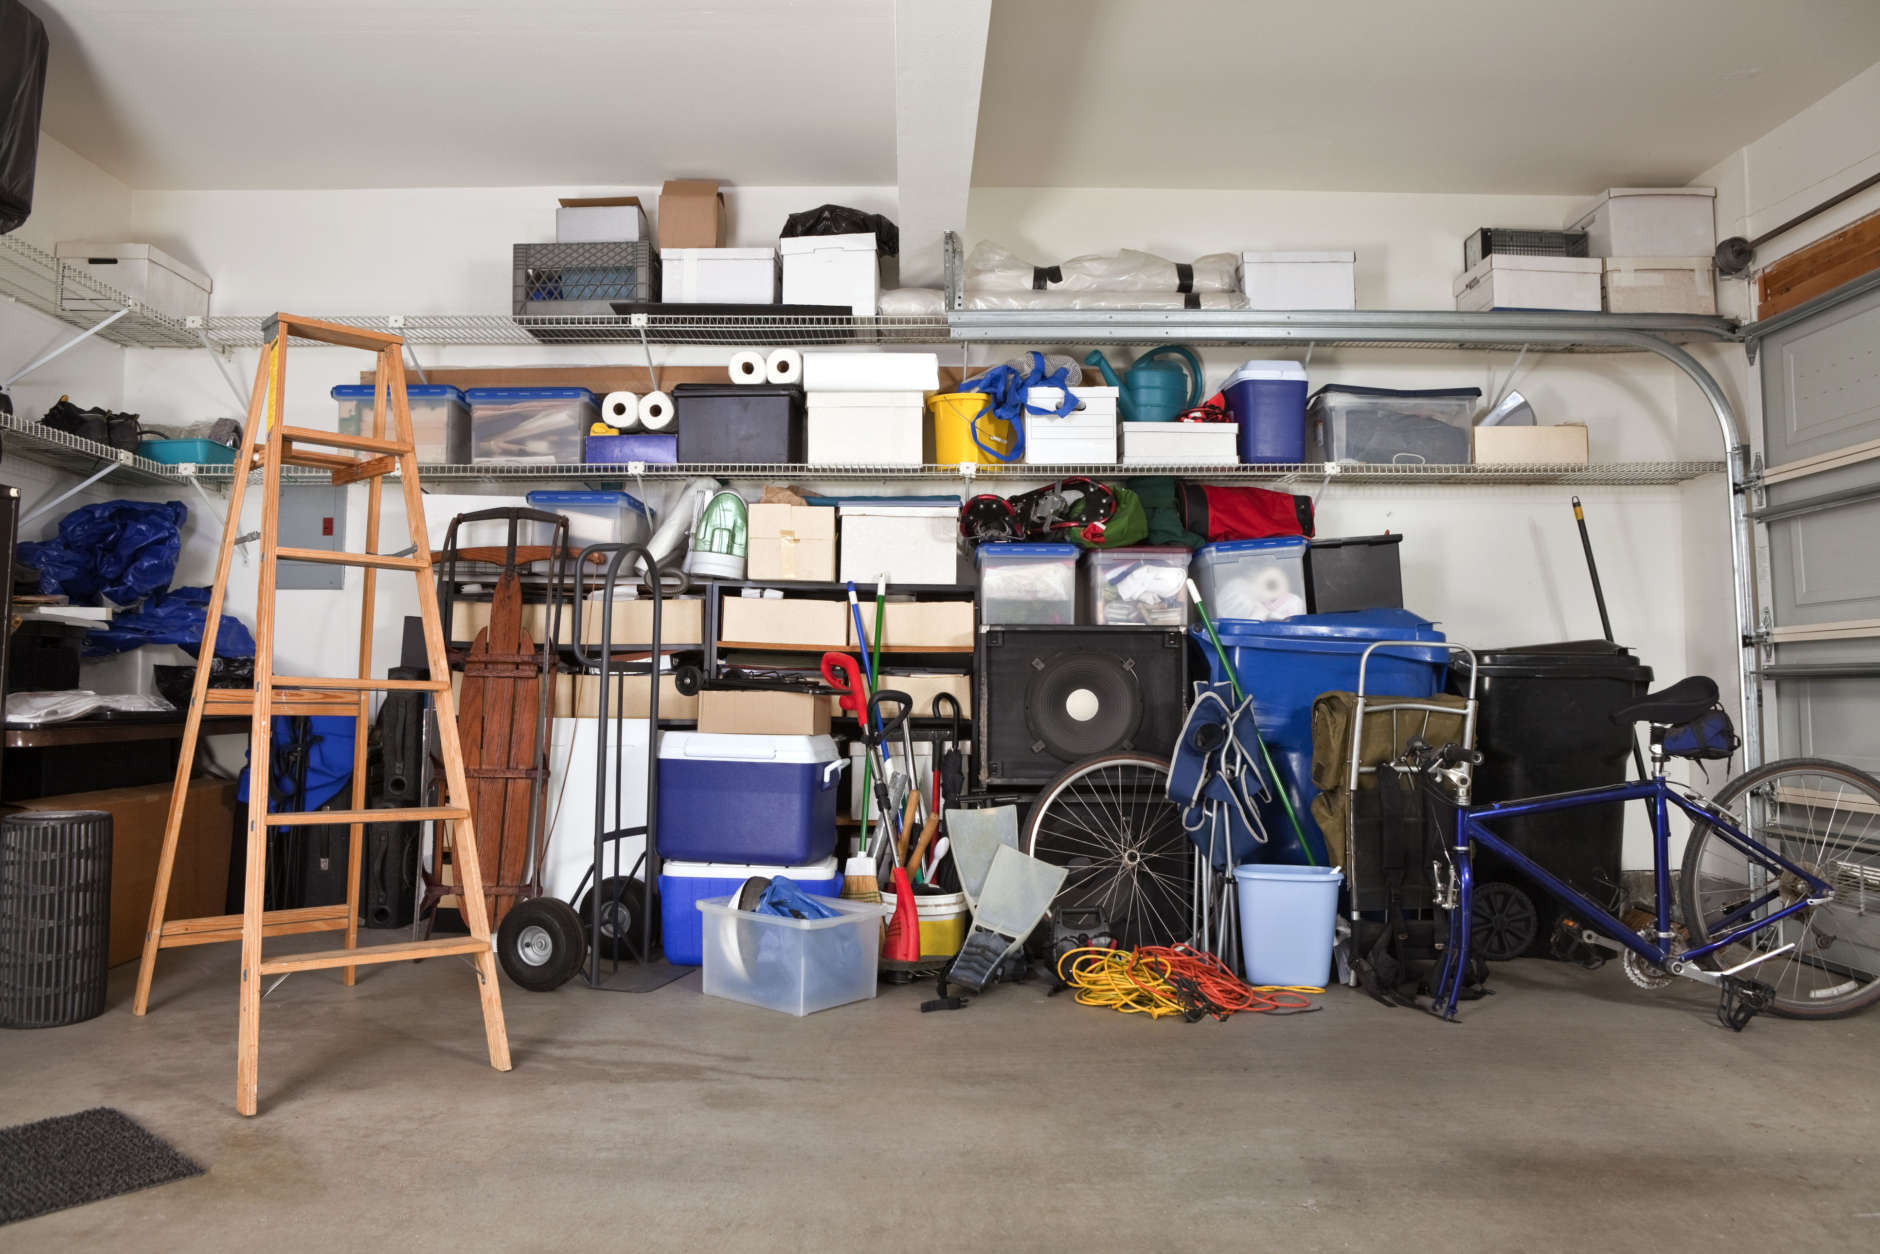 No one likes organizing their garage, but installing shelving can make finding things faster and easier. (Thinkstock)